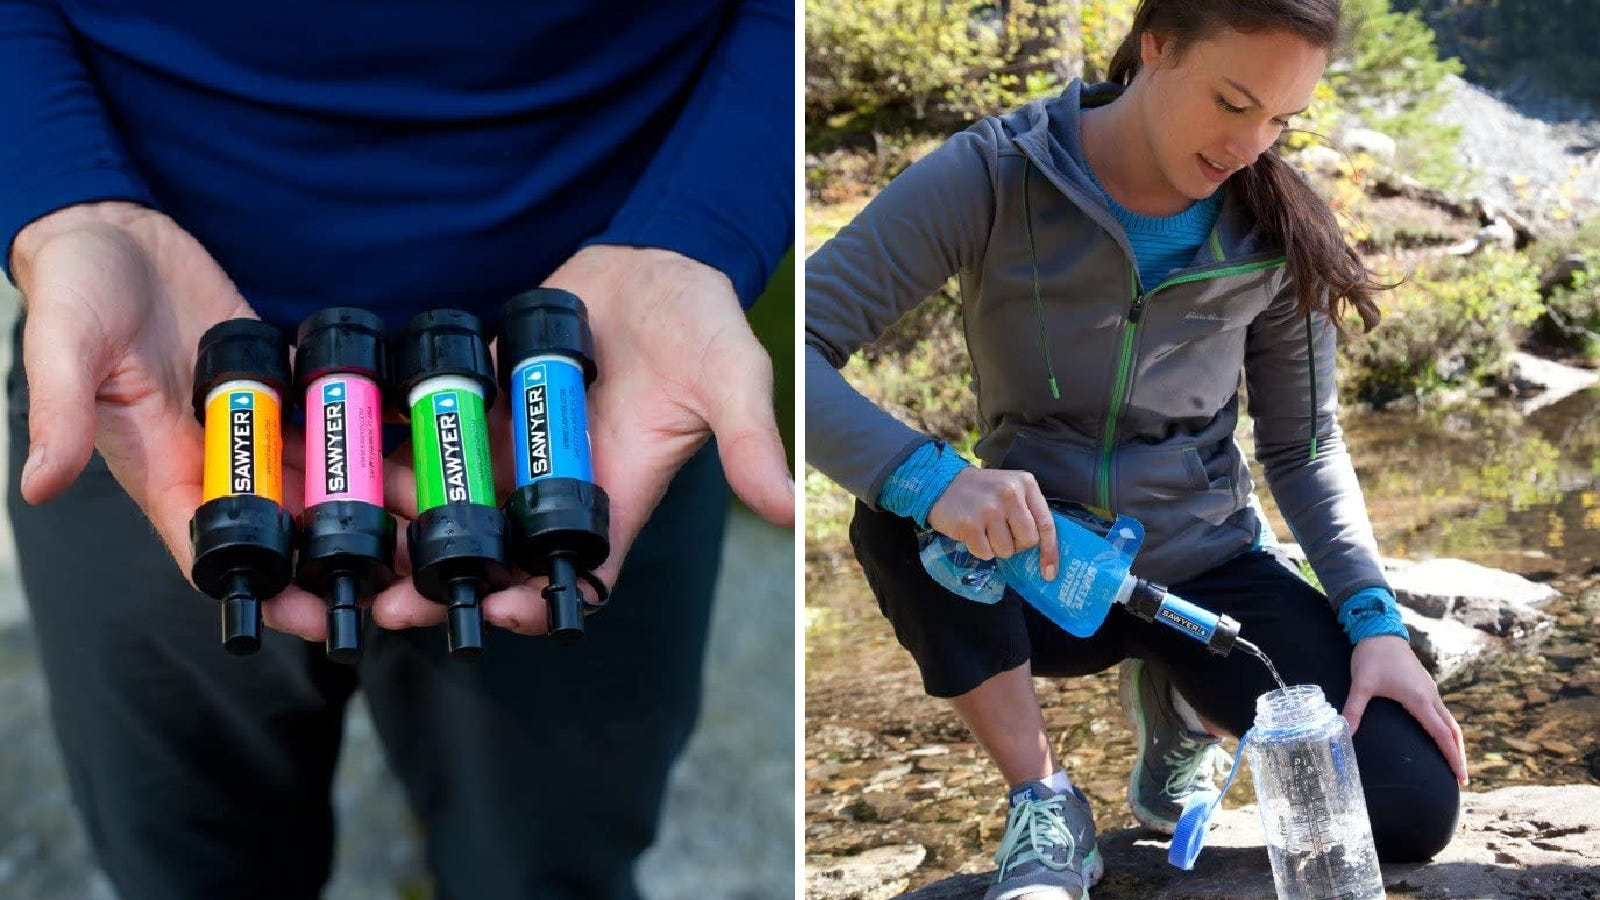 Two images displaying the sawyer products water filtration system. The left image displays all four colors available, and the right image shows a hiker filtering water into her water bottle.